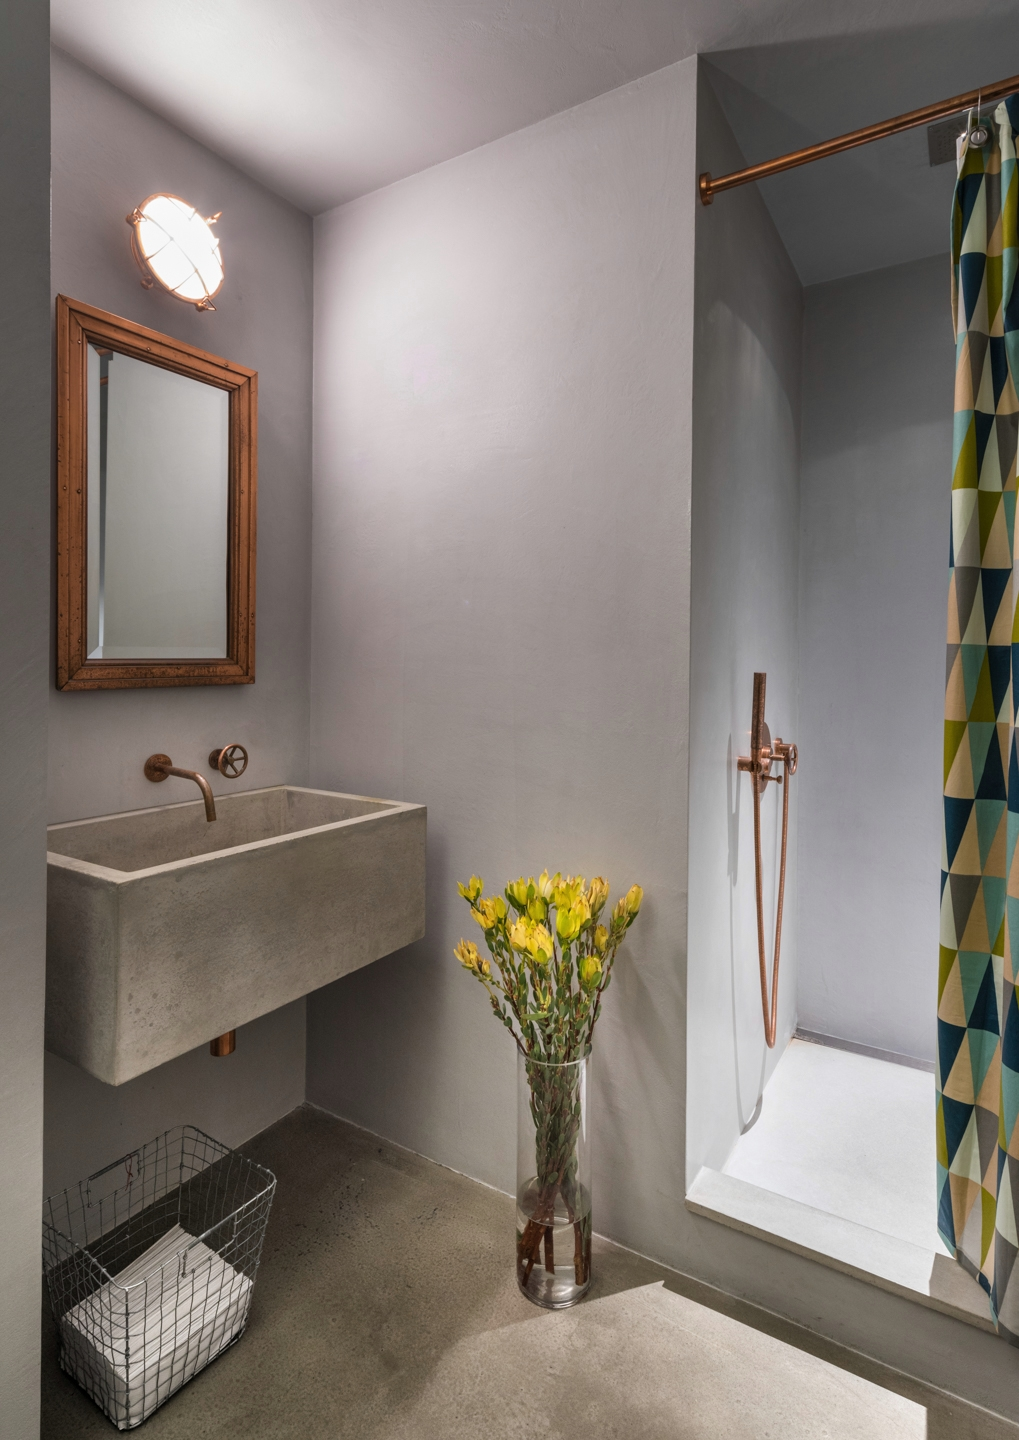 INC Architecture & Design Bathroom Sink and Shower